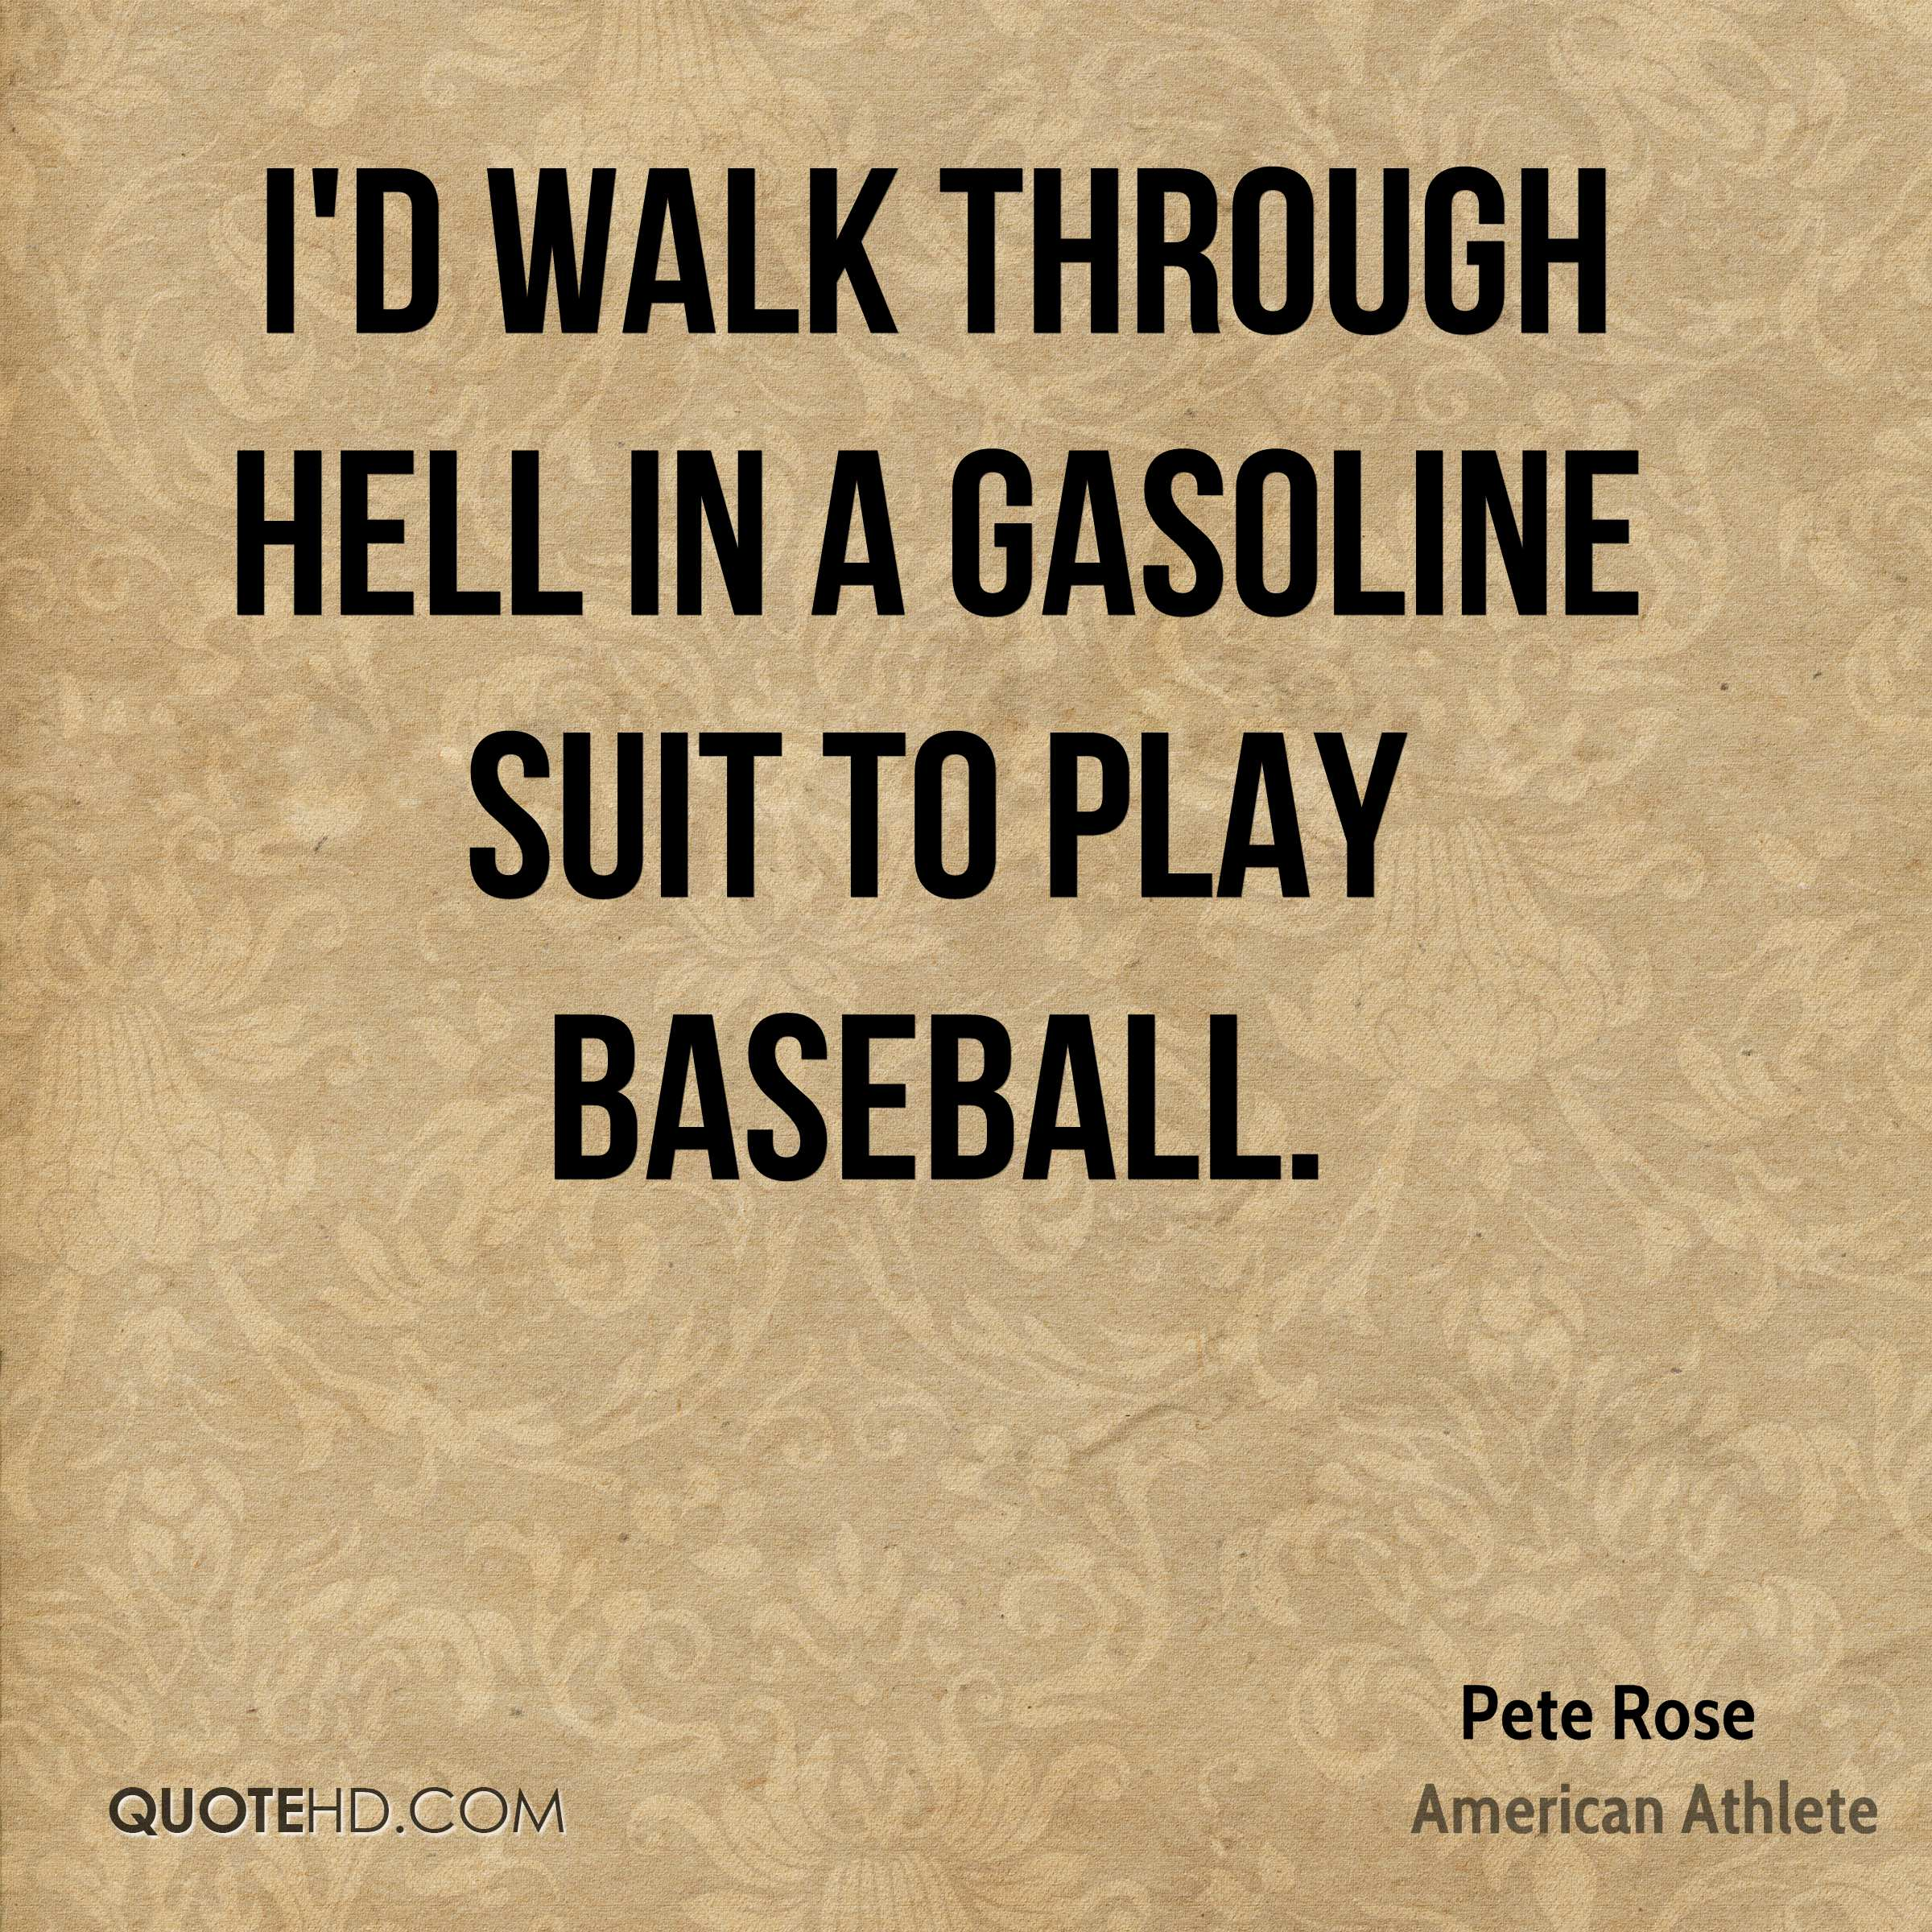 I'd walk through hell in a gasoline suit to play baseball.